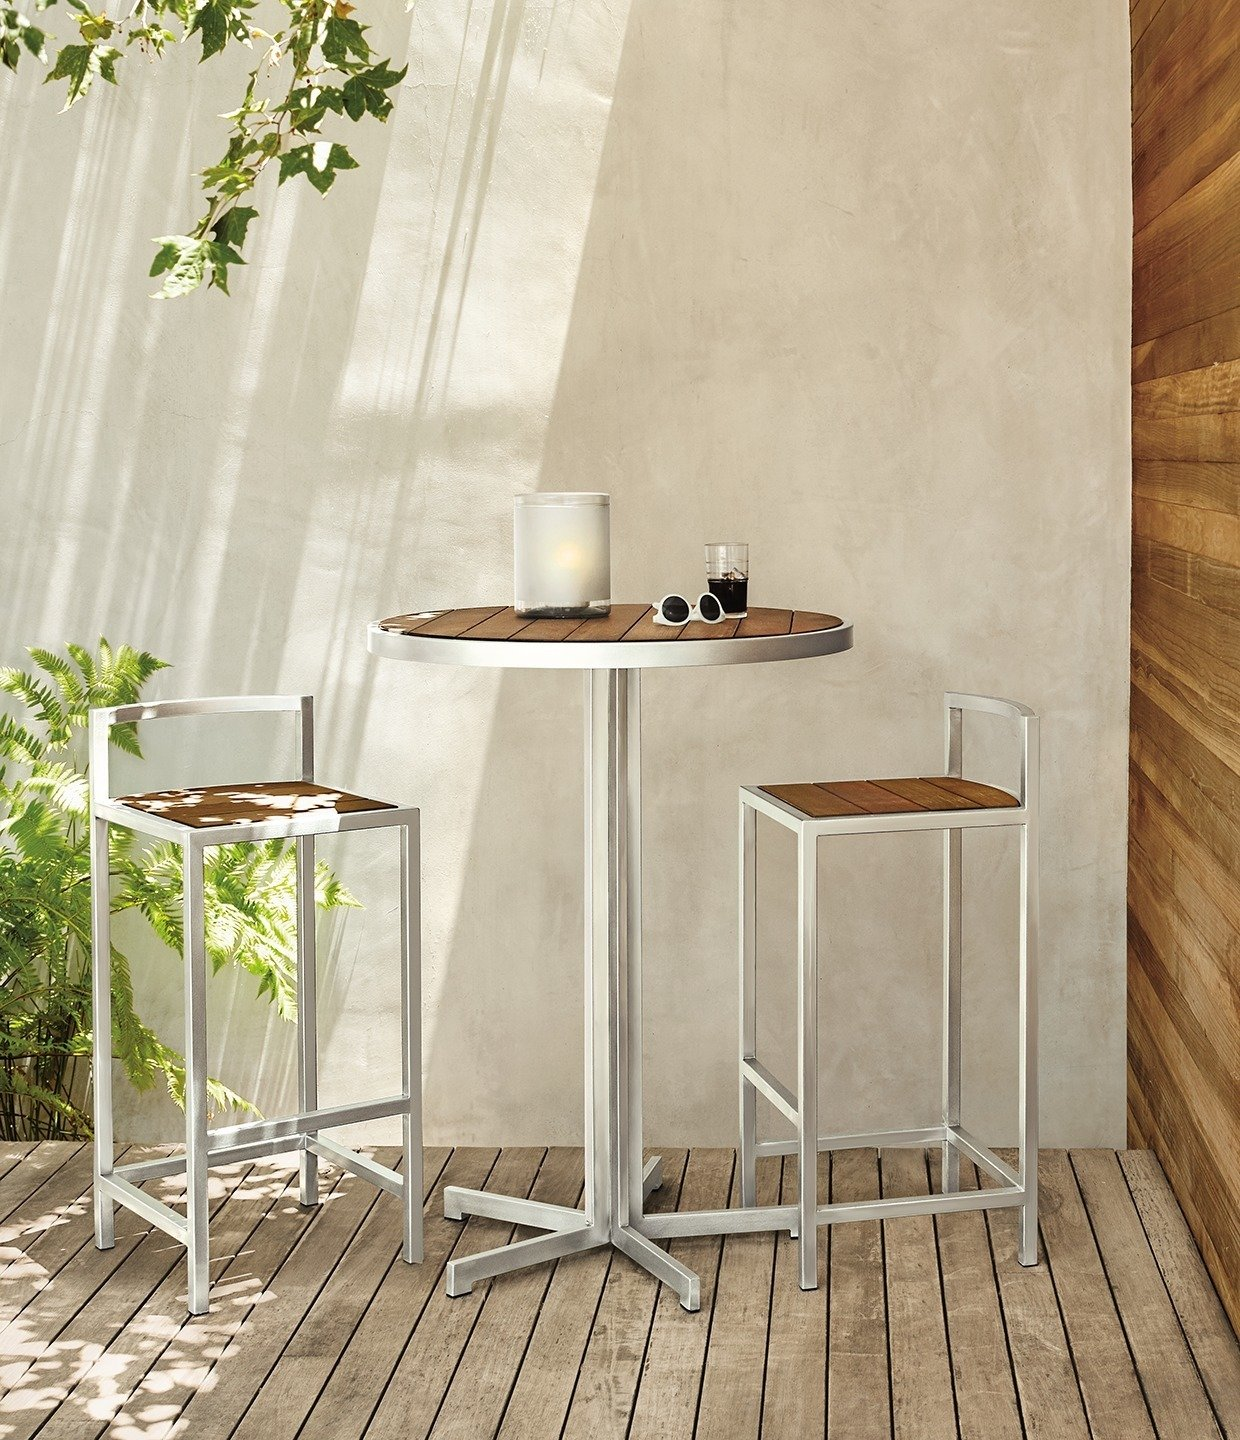 Montego round bar table, Montego bar stools Tagged: Outdoor, Back Yard, Small Patio, Porch, Deck, Side Yard, and Wood Patio, Porch, Deck.  Photo 7 of 8 in Expert Design Advice: Outdoor Dining Spaces